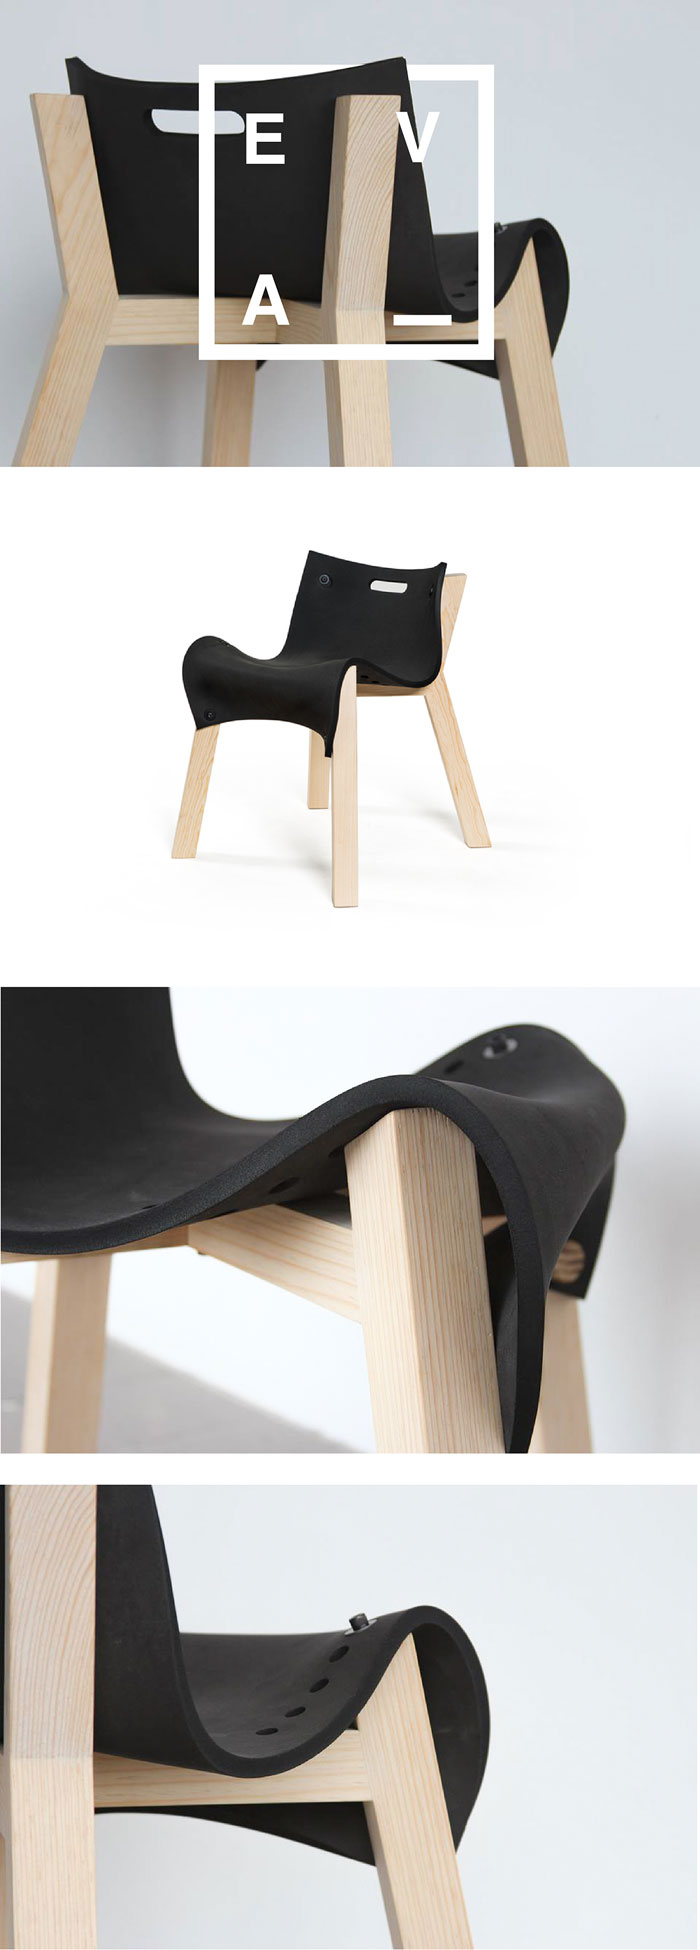 Bon La Eva, A Clever Chair Furniture Concept By David Ortiz, An Industrial  Designer Based